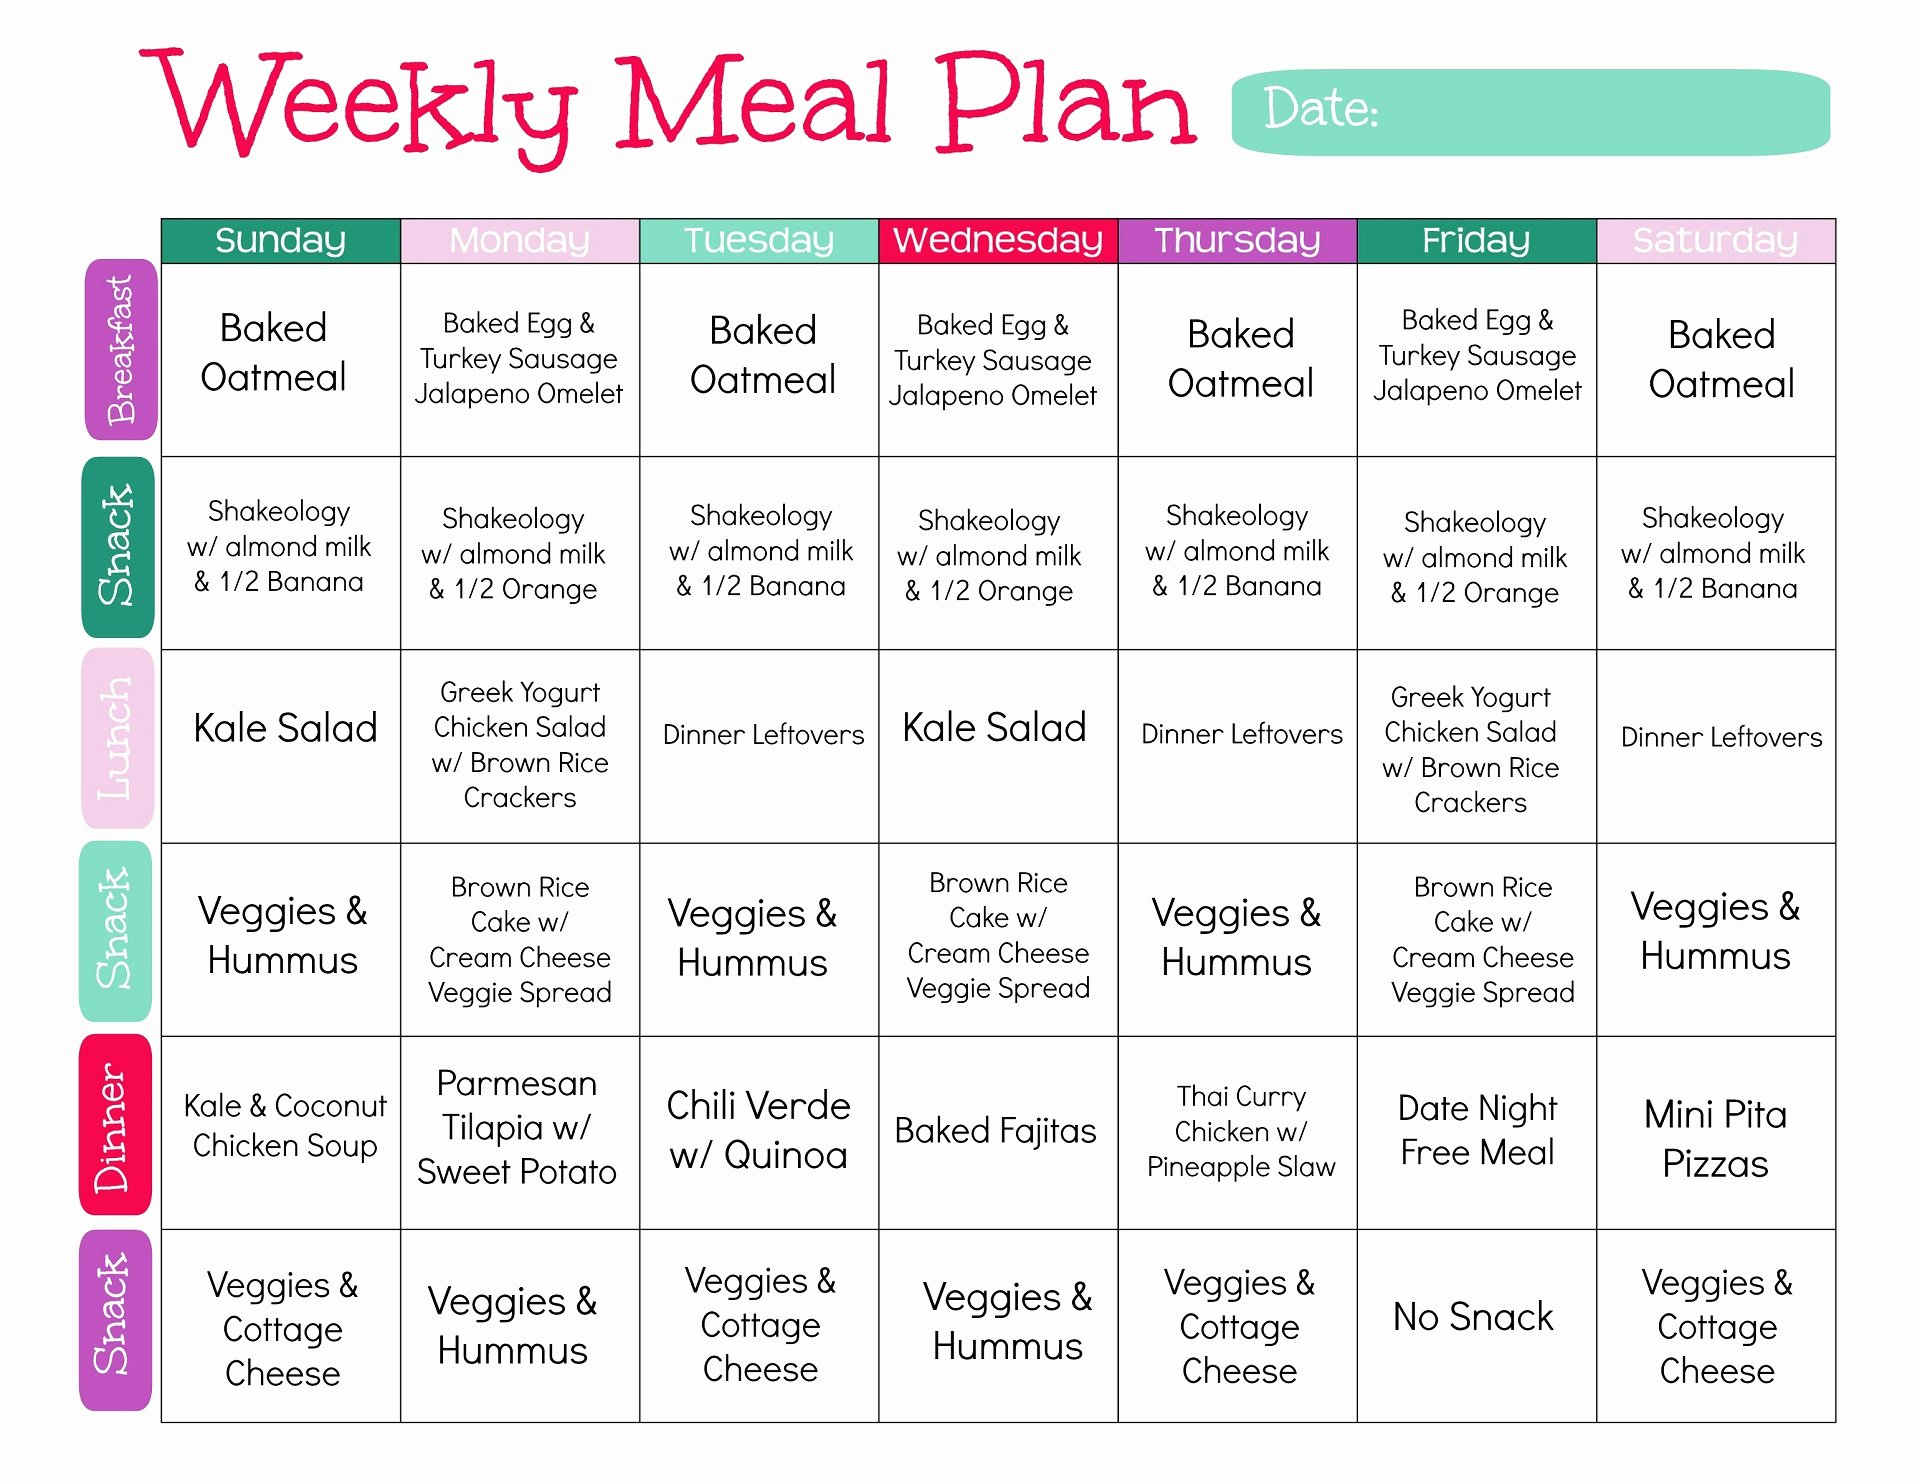 Weight Loss Meal Planner Template Lovely Best Way to Lose Weight In 2018 Meal Plan